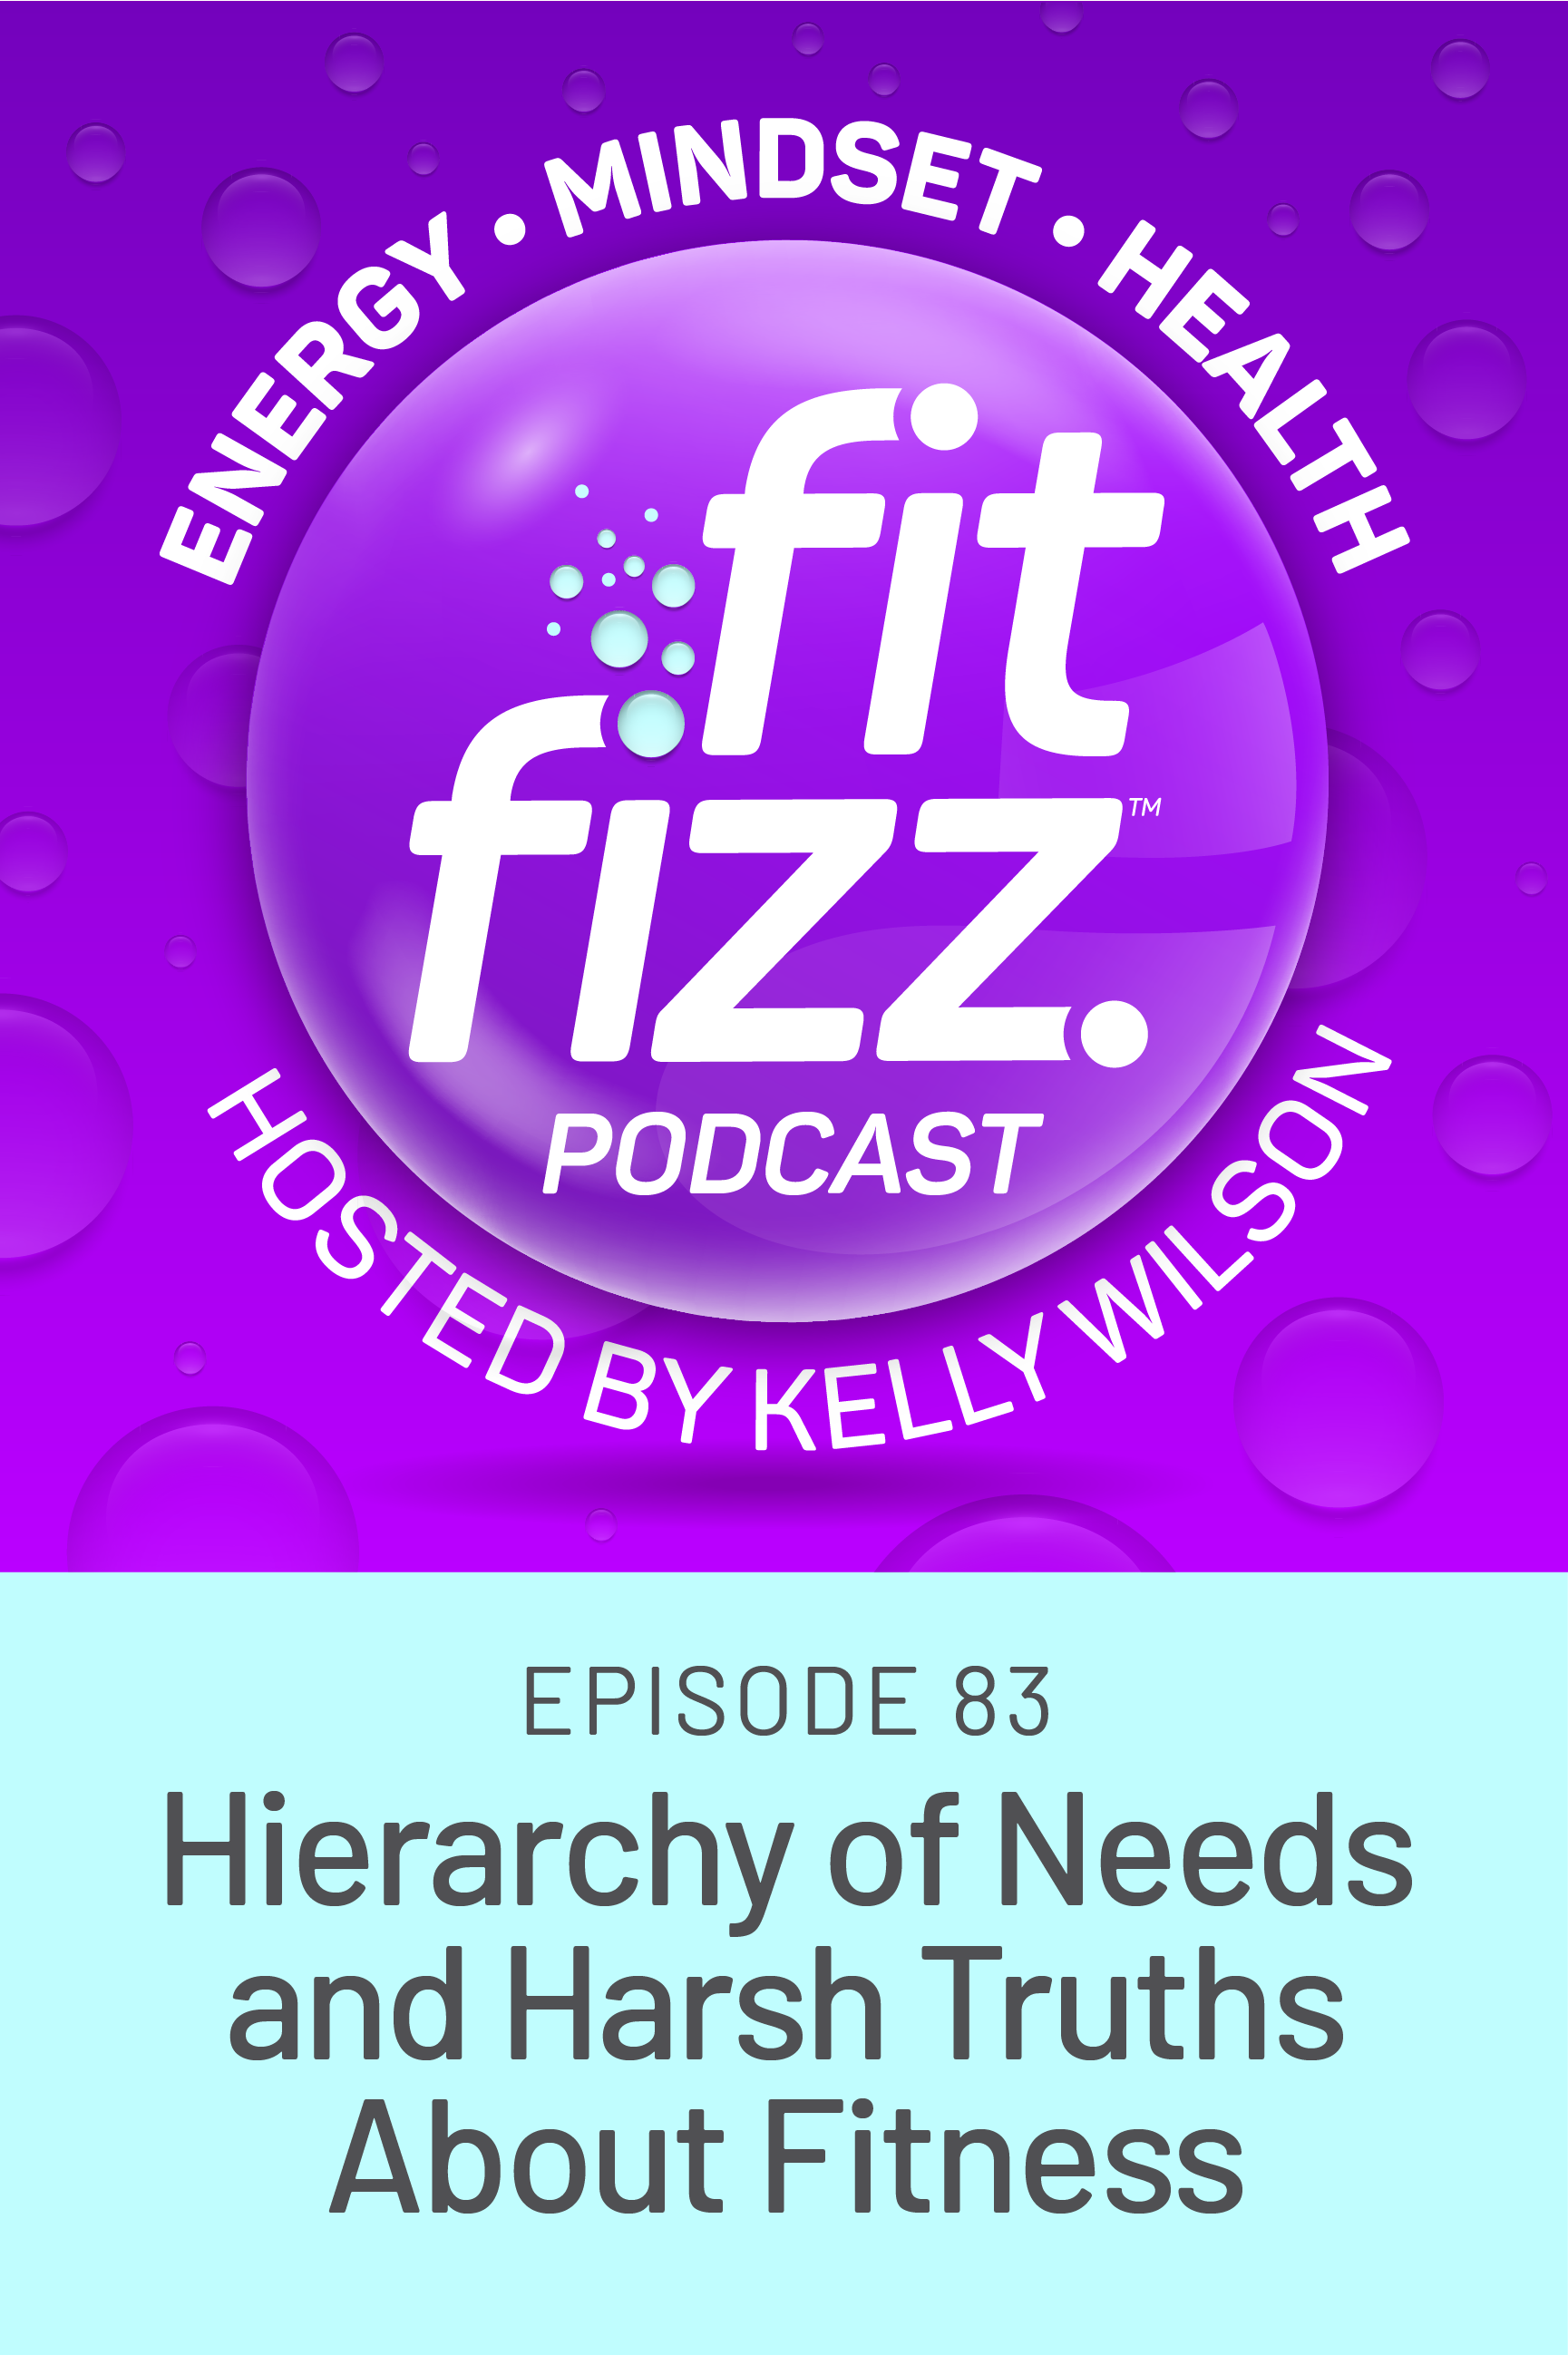 Ep. 83: Hierarchy of Needs and Harsh Truths About Fitness